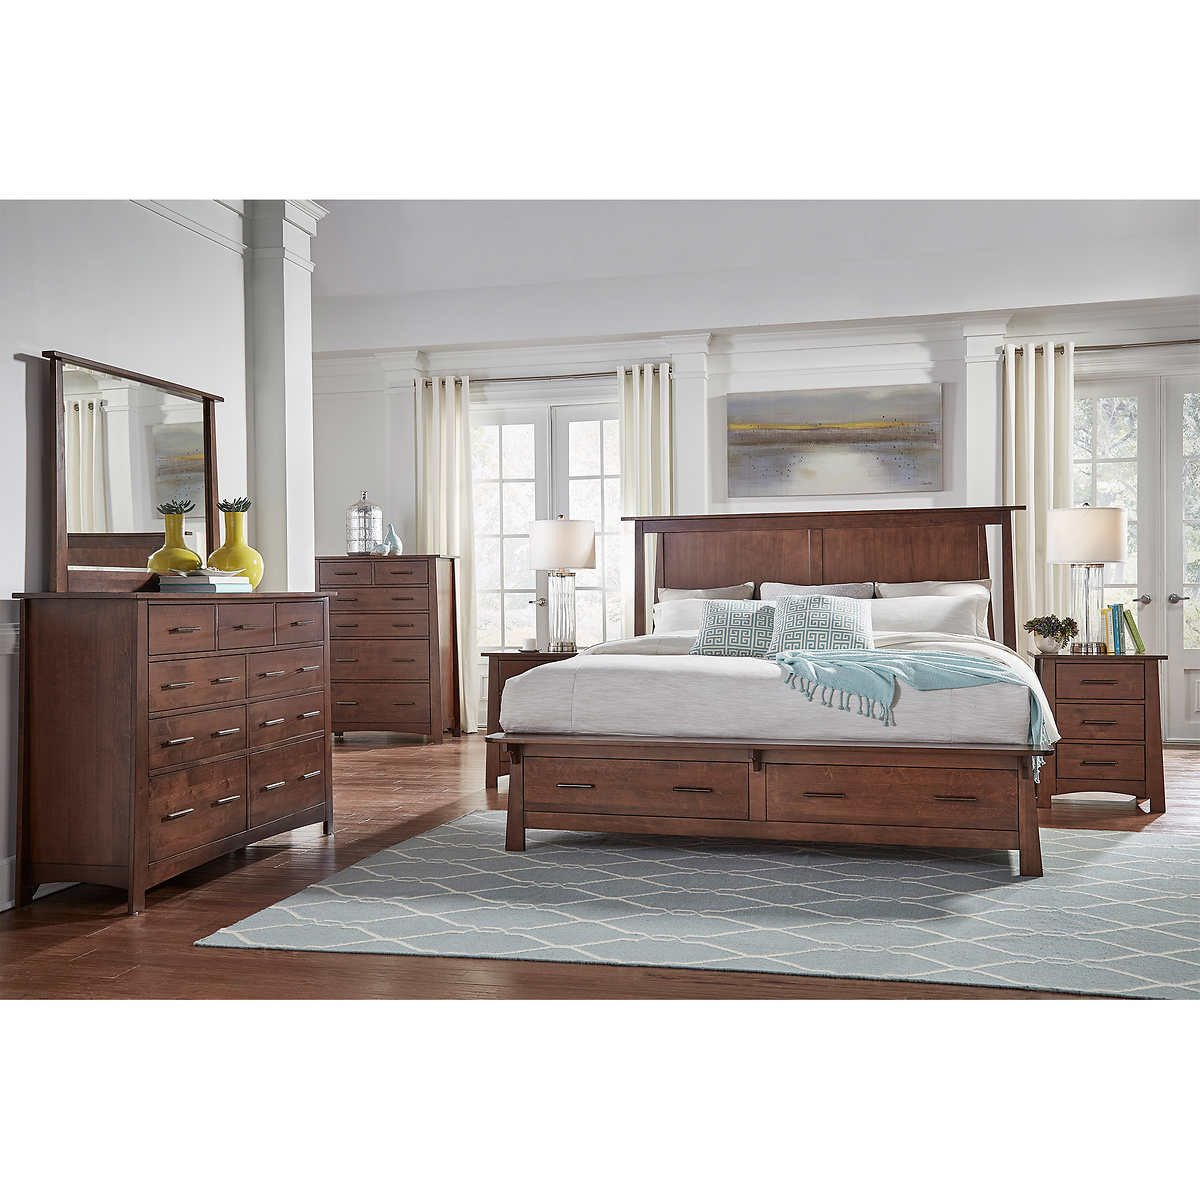 Costco Bedroom Furniture Reviews Inspirational Callie 6 Piece King Storage Bedroom Set